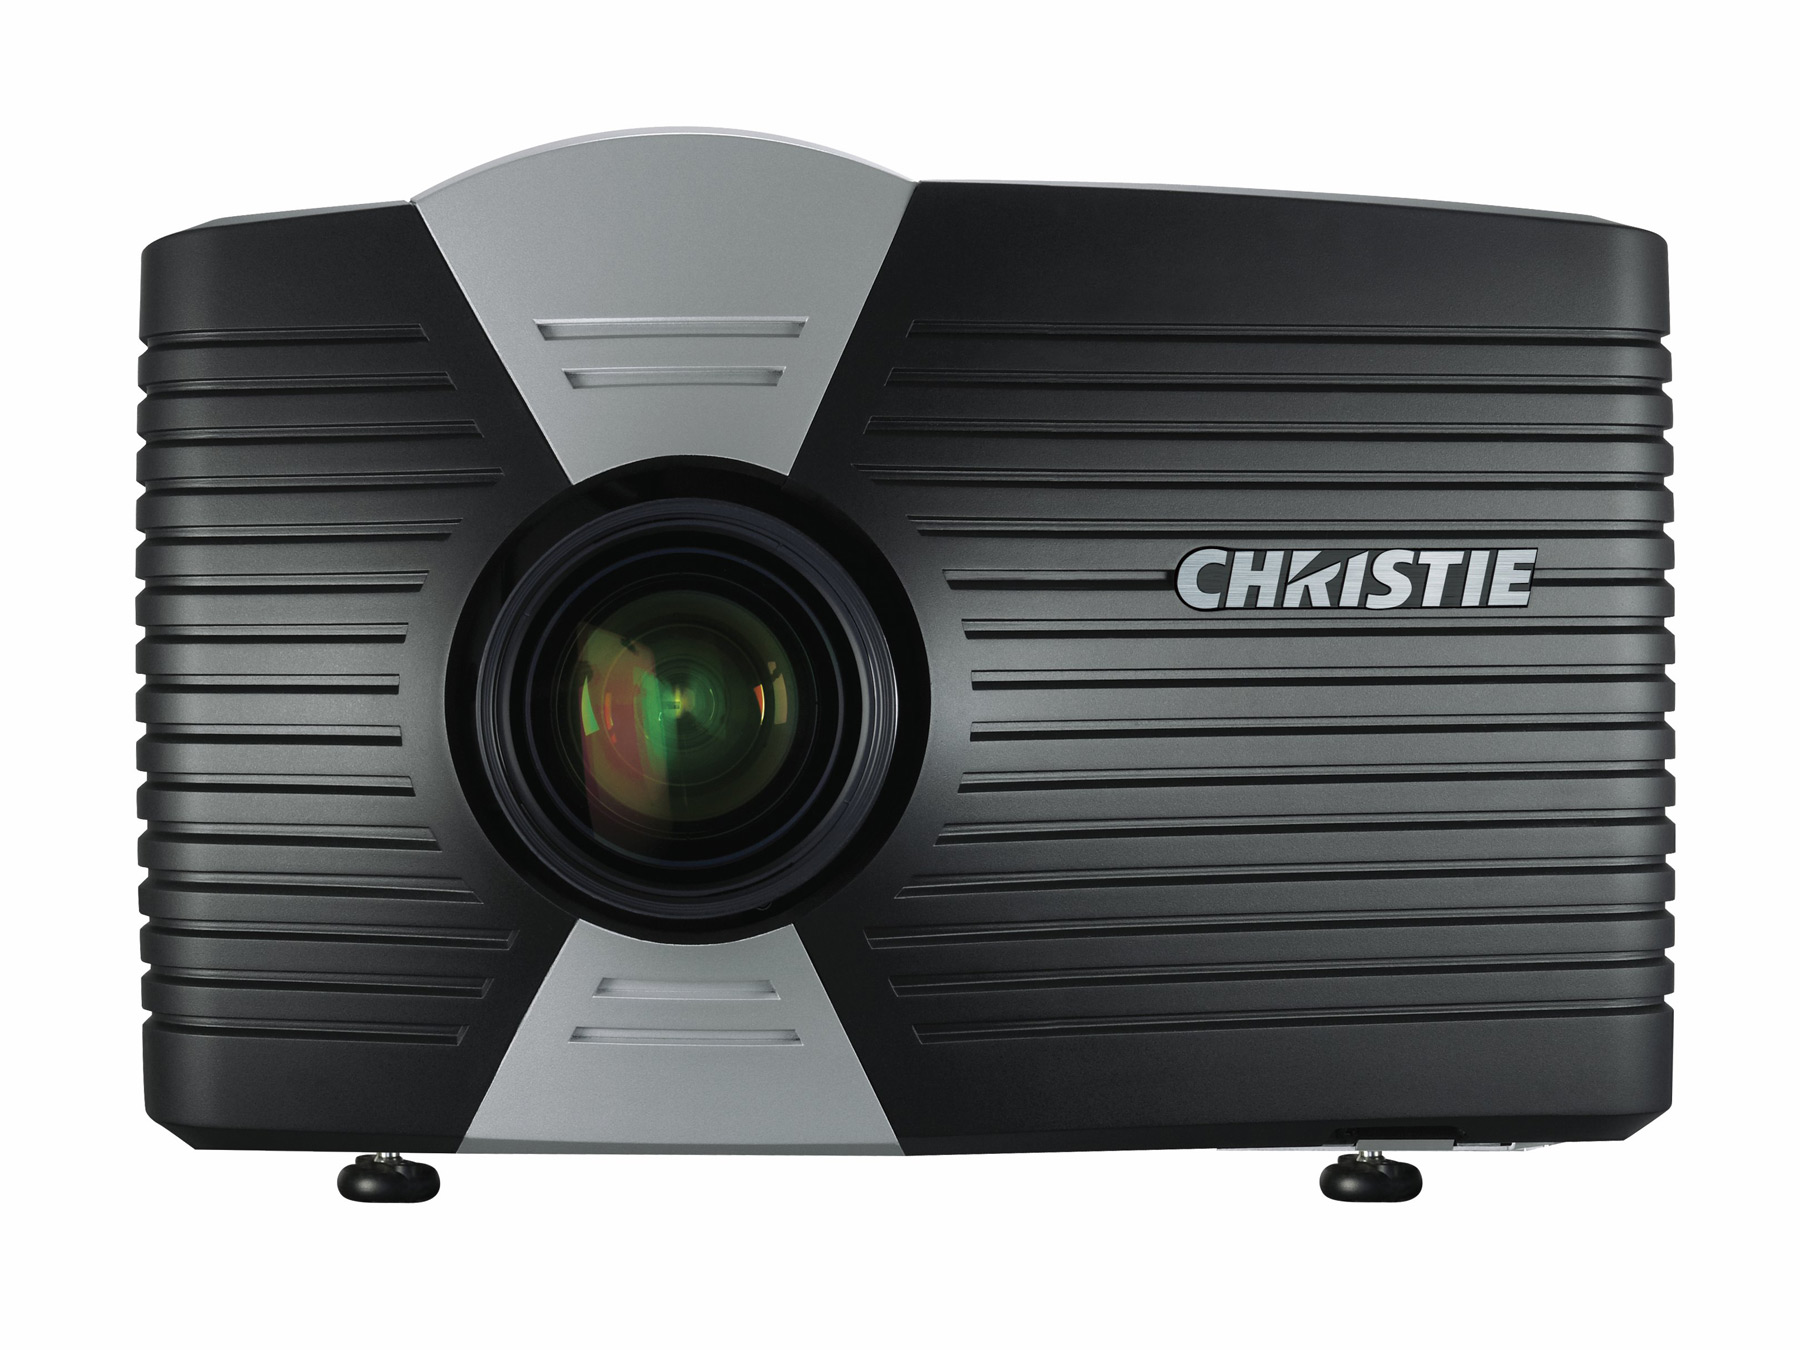 /globalassets/.catalog/products/images/christie-cp4230/gallery/digital-cinema-projector-4k-image-3.jpg